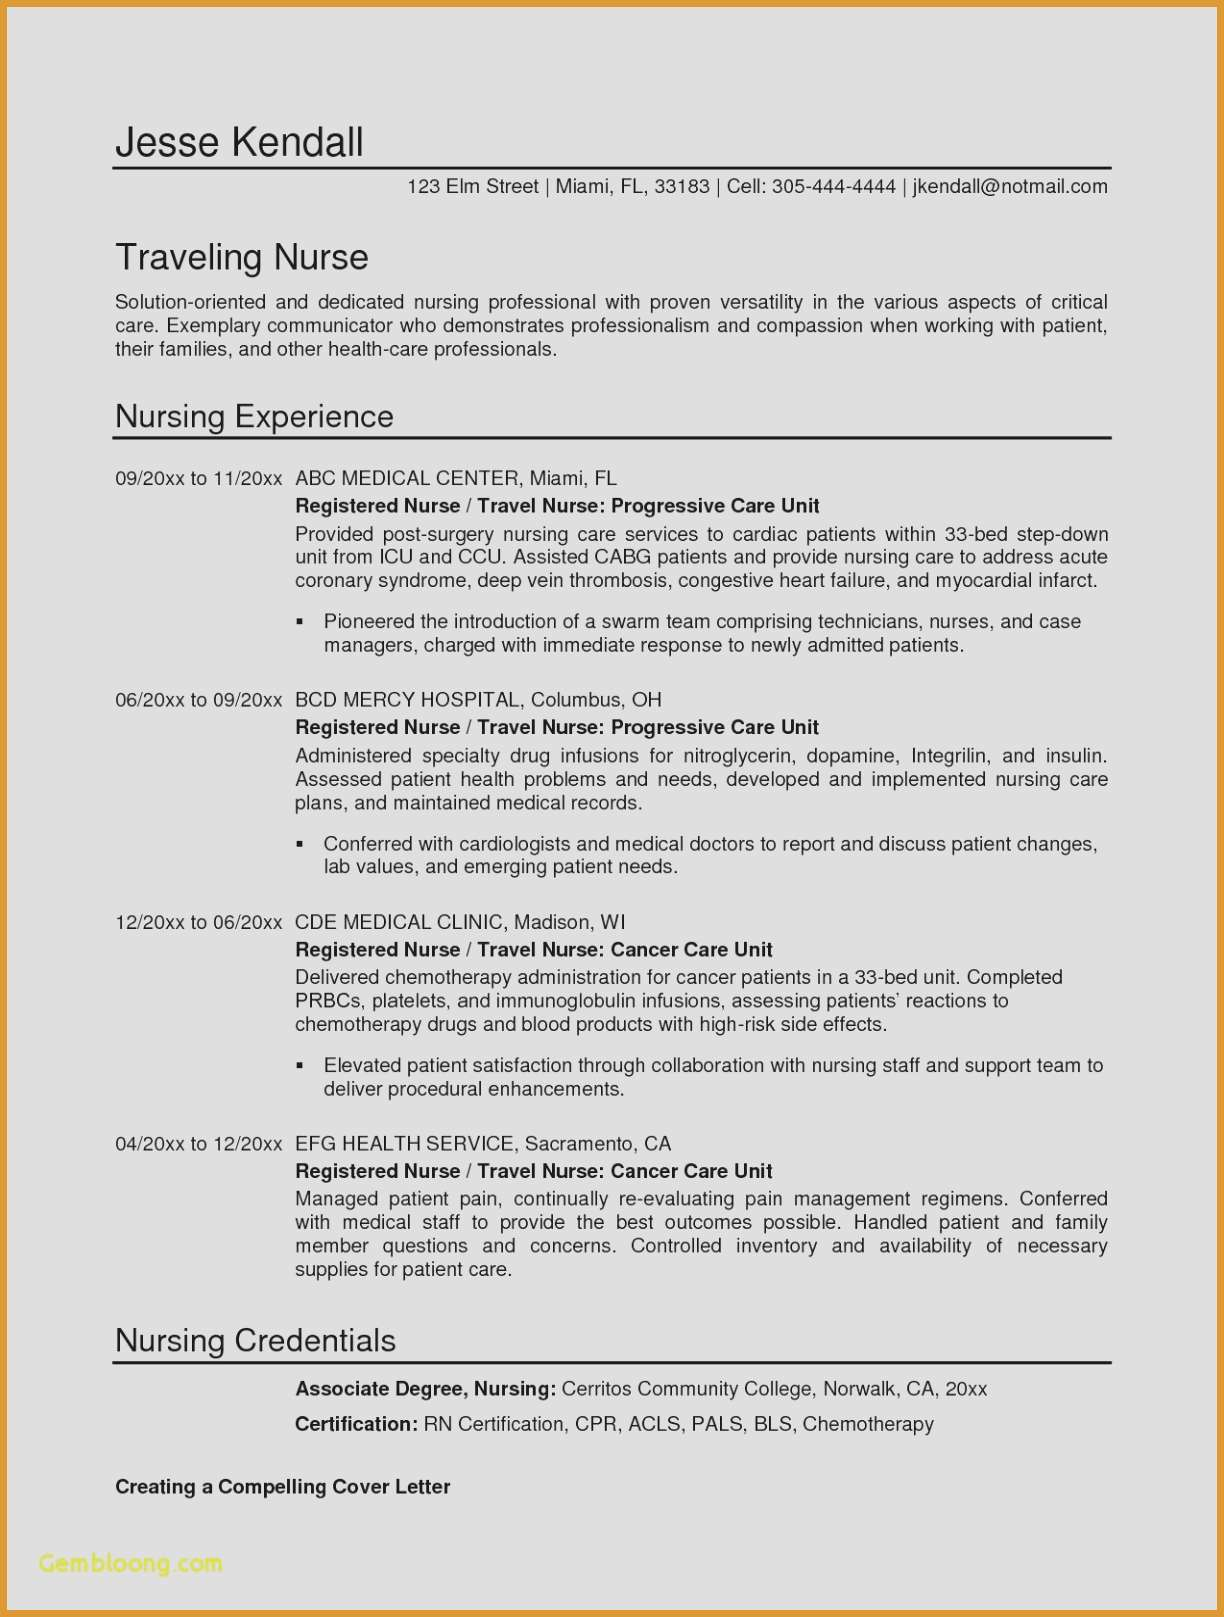 Letter Of Collaboration Template - Artistic Resume Templates